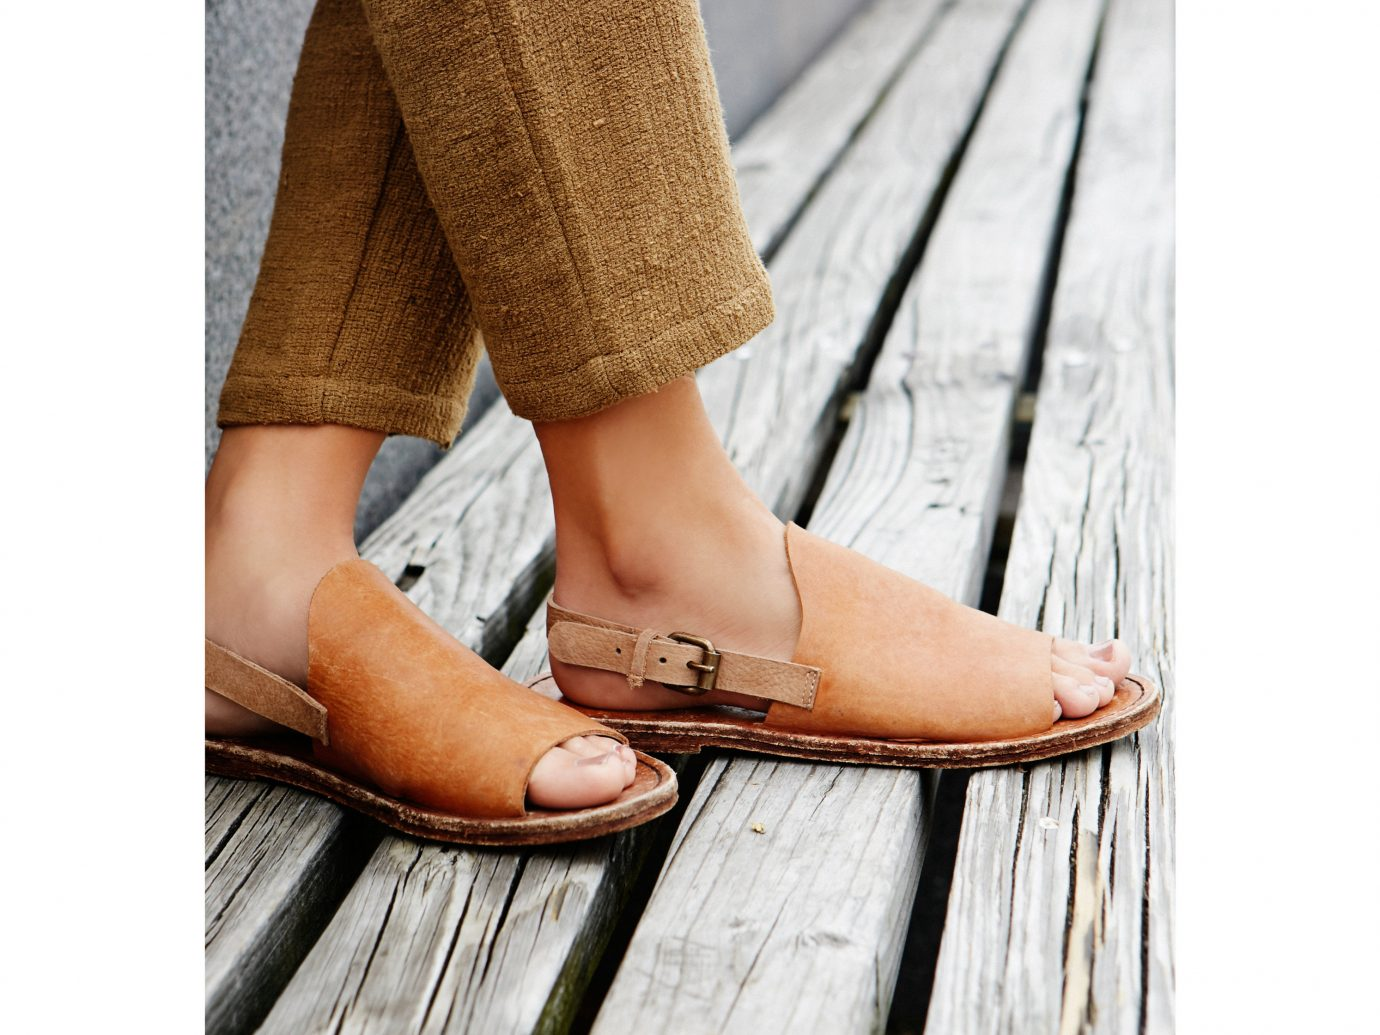 Style + Design wooden footwear person shoe outdoor wood spring leg leather shoes human body